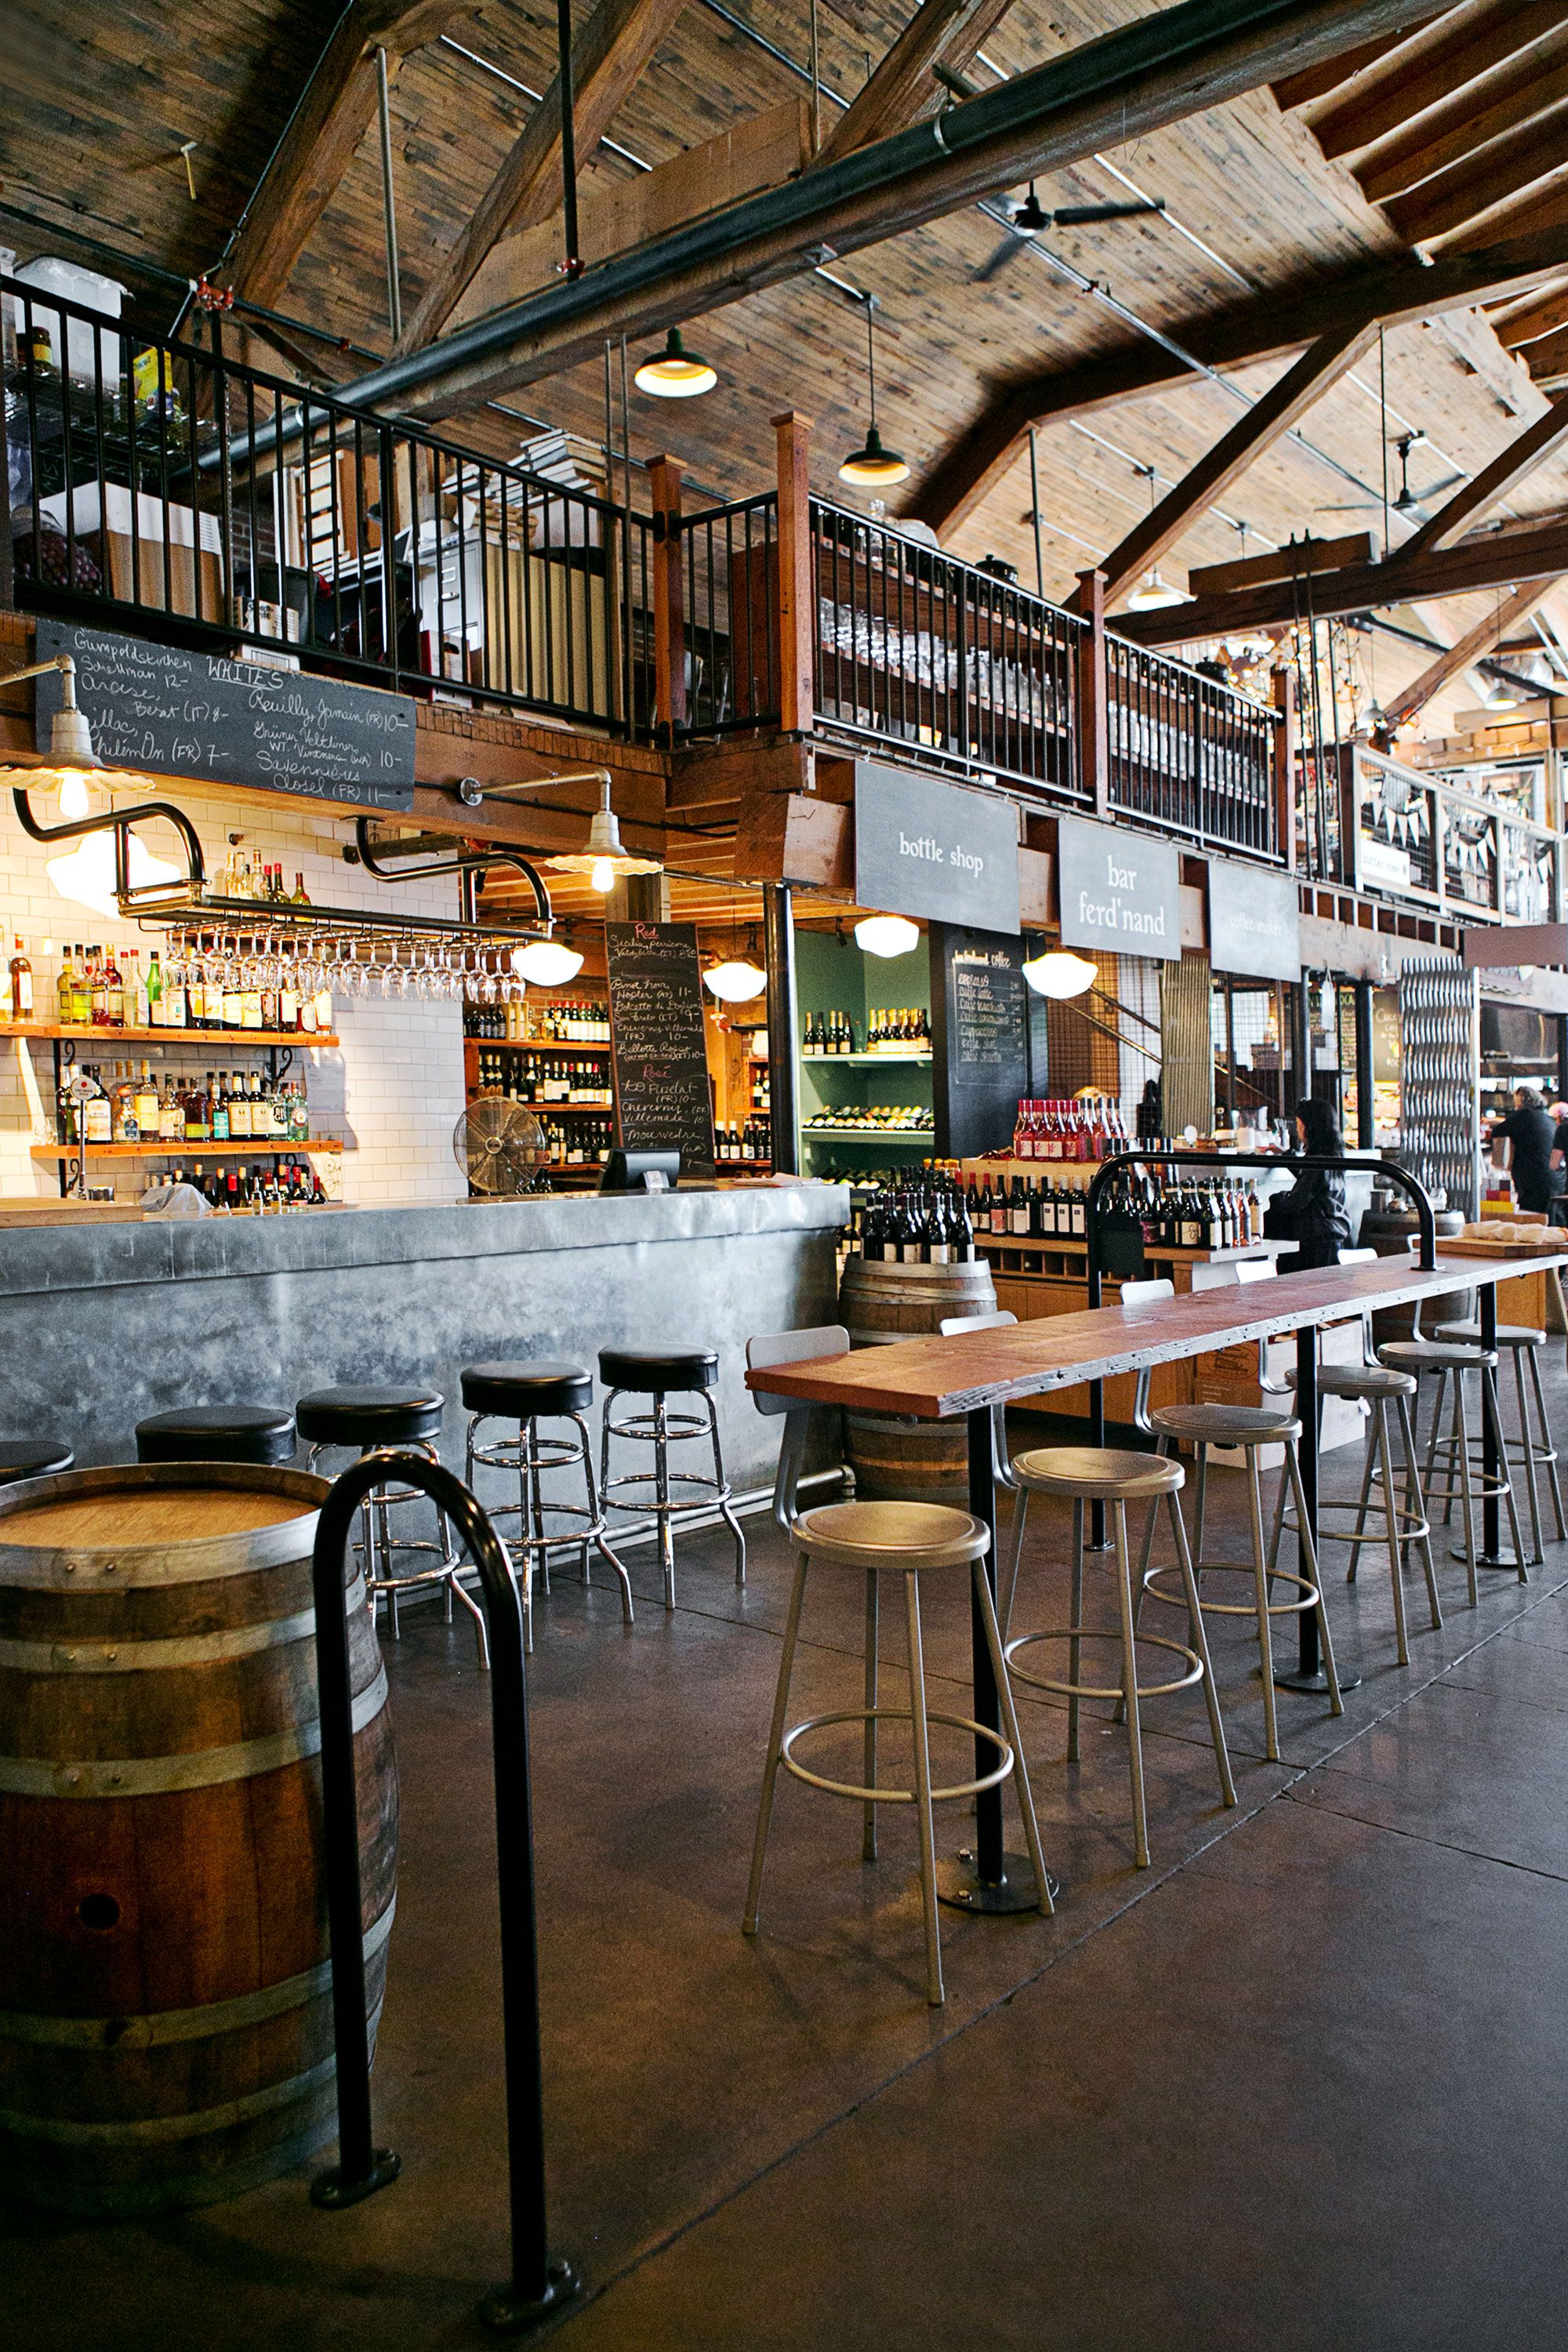 small resolution of some of the best farm to table fare can be found at melrose market with indie food purveyors a restaurant and the rustic chic bar ferd nand